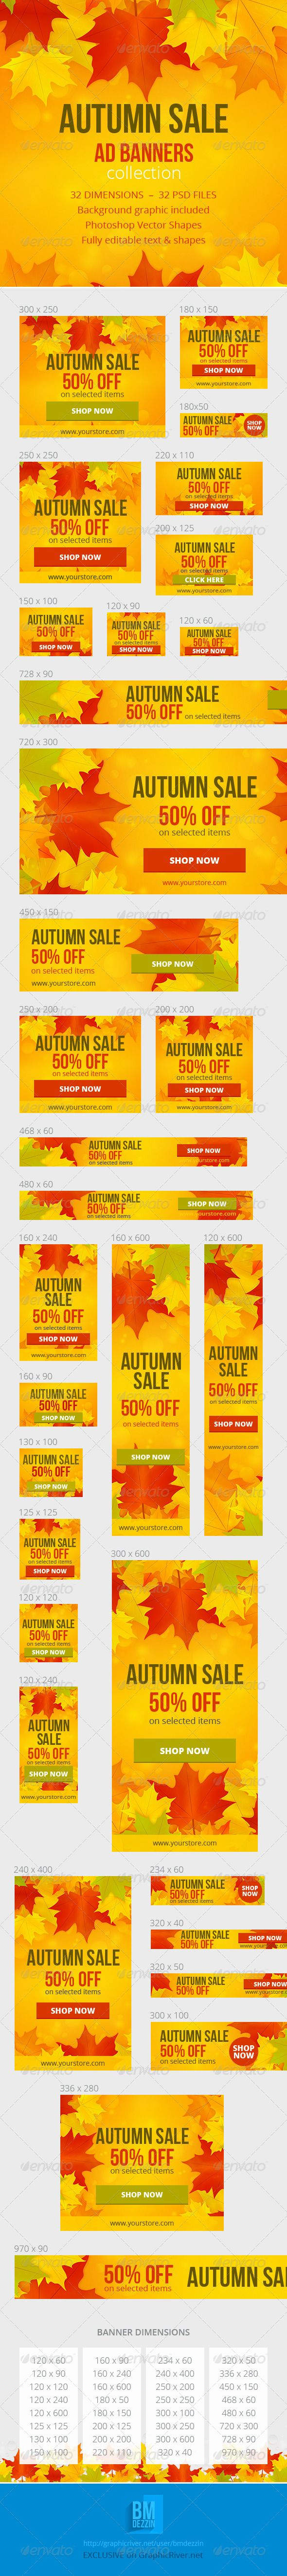 Autumn Sale Ad Web Banners Template PSD | Buy and Download: http://graphicriver.net/item/autumn-sale-ad-banners/5981050?WT.ac=category_thumb&WT.z_author=bmdezzin&ref=ksioks